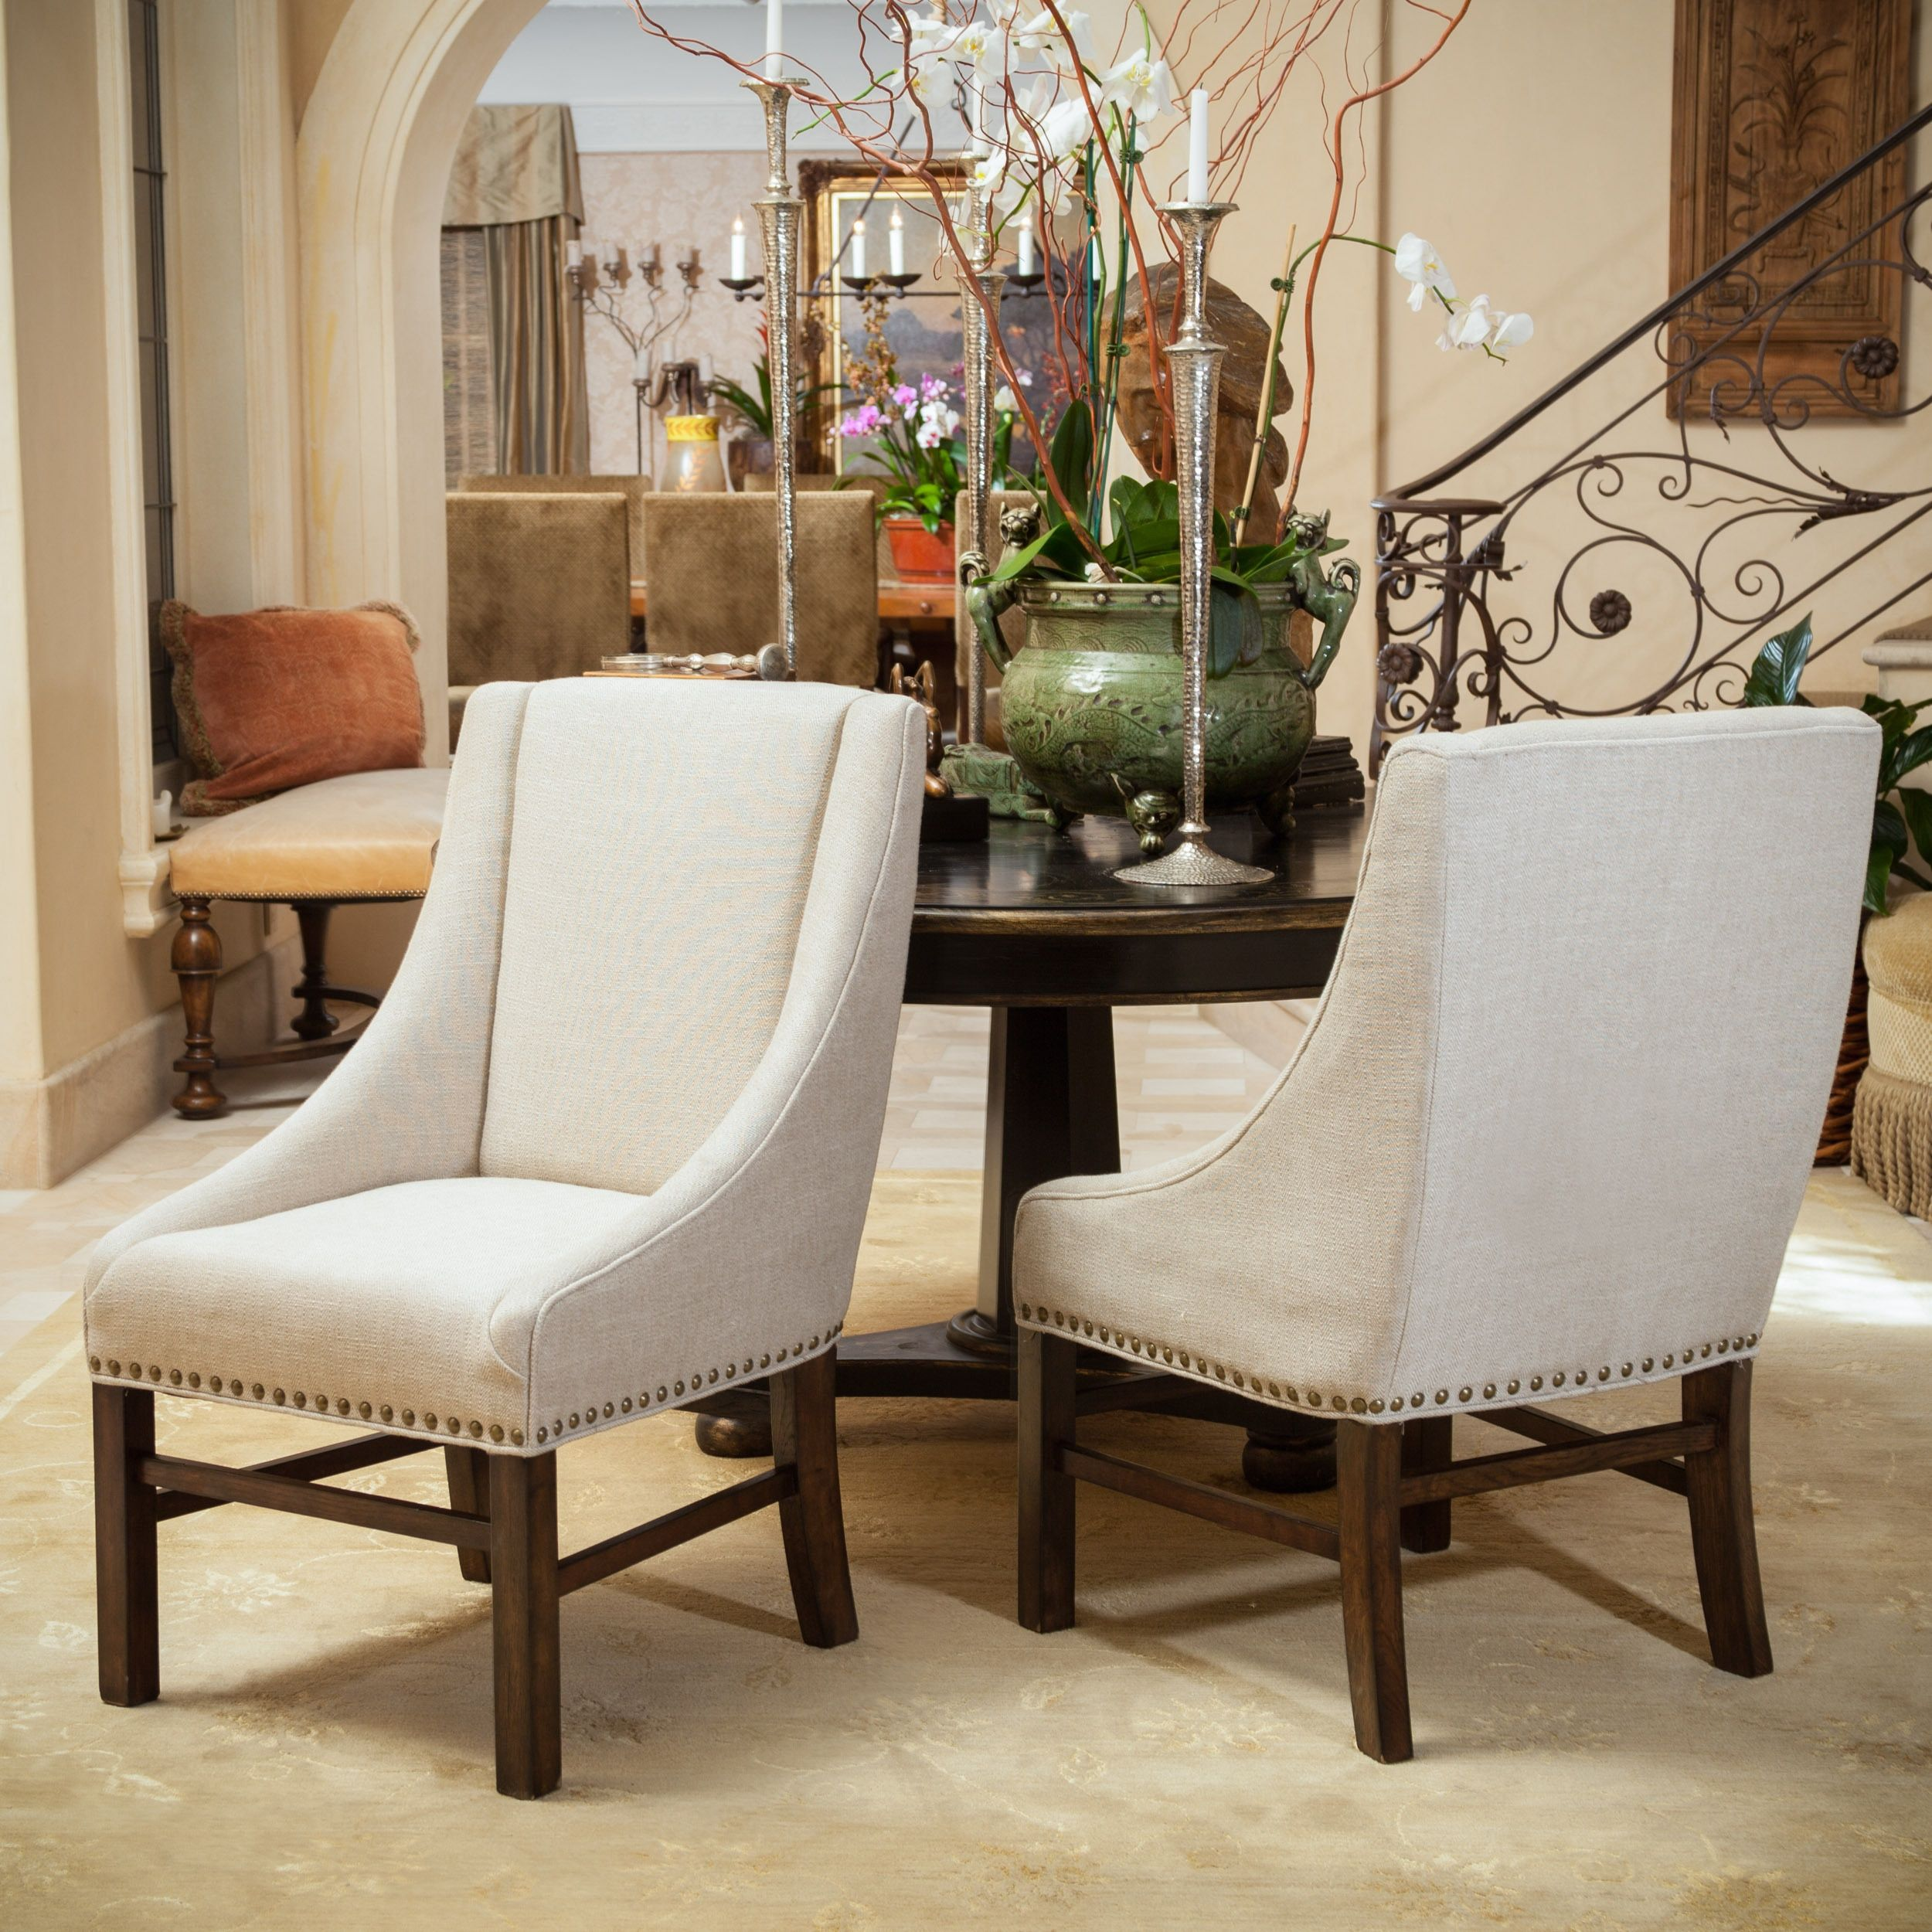 dining room chairs: make mealtimes more inviting with comfortable